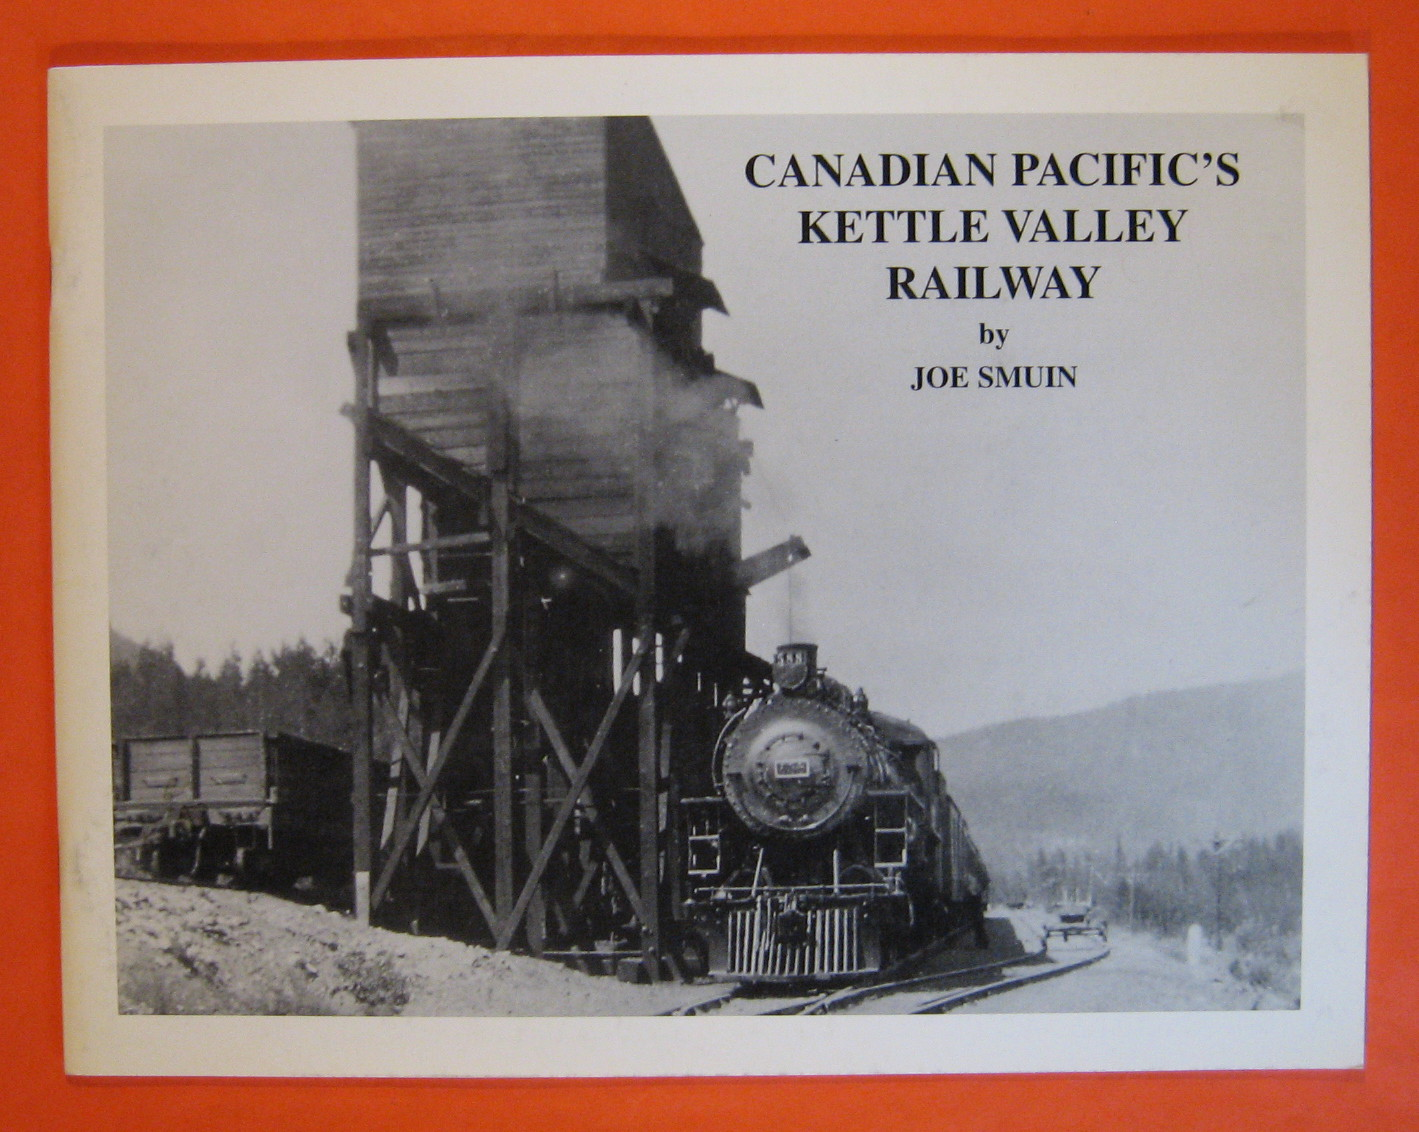 Canadian Pacific's Kettle Valley Railway, Smuin, Joe